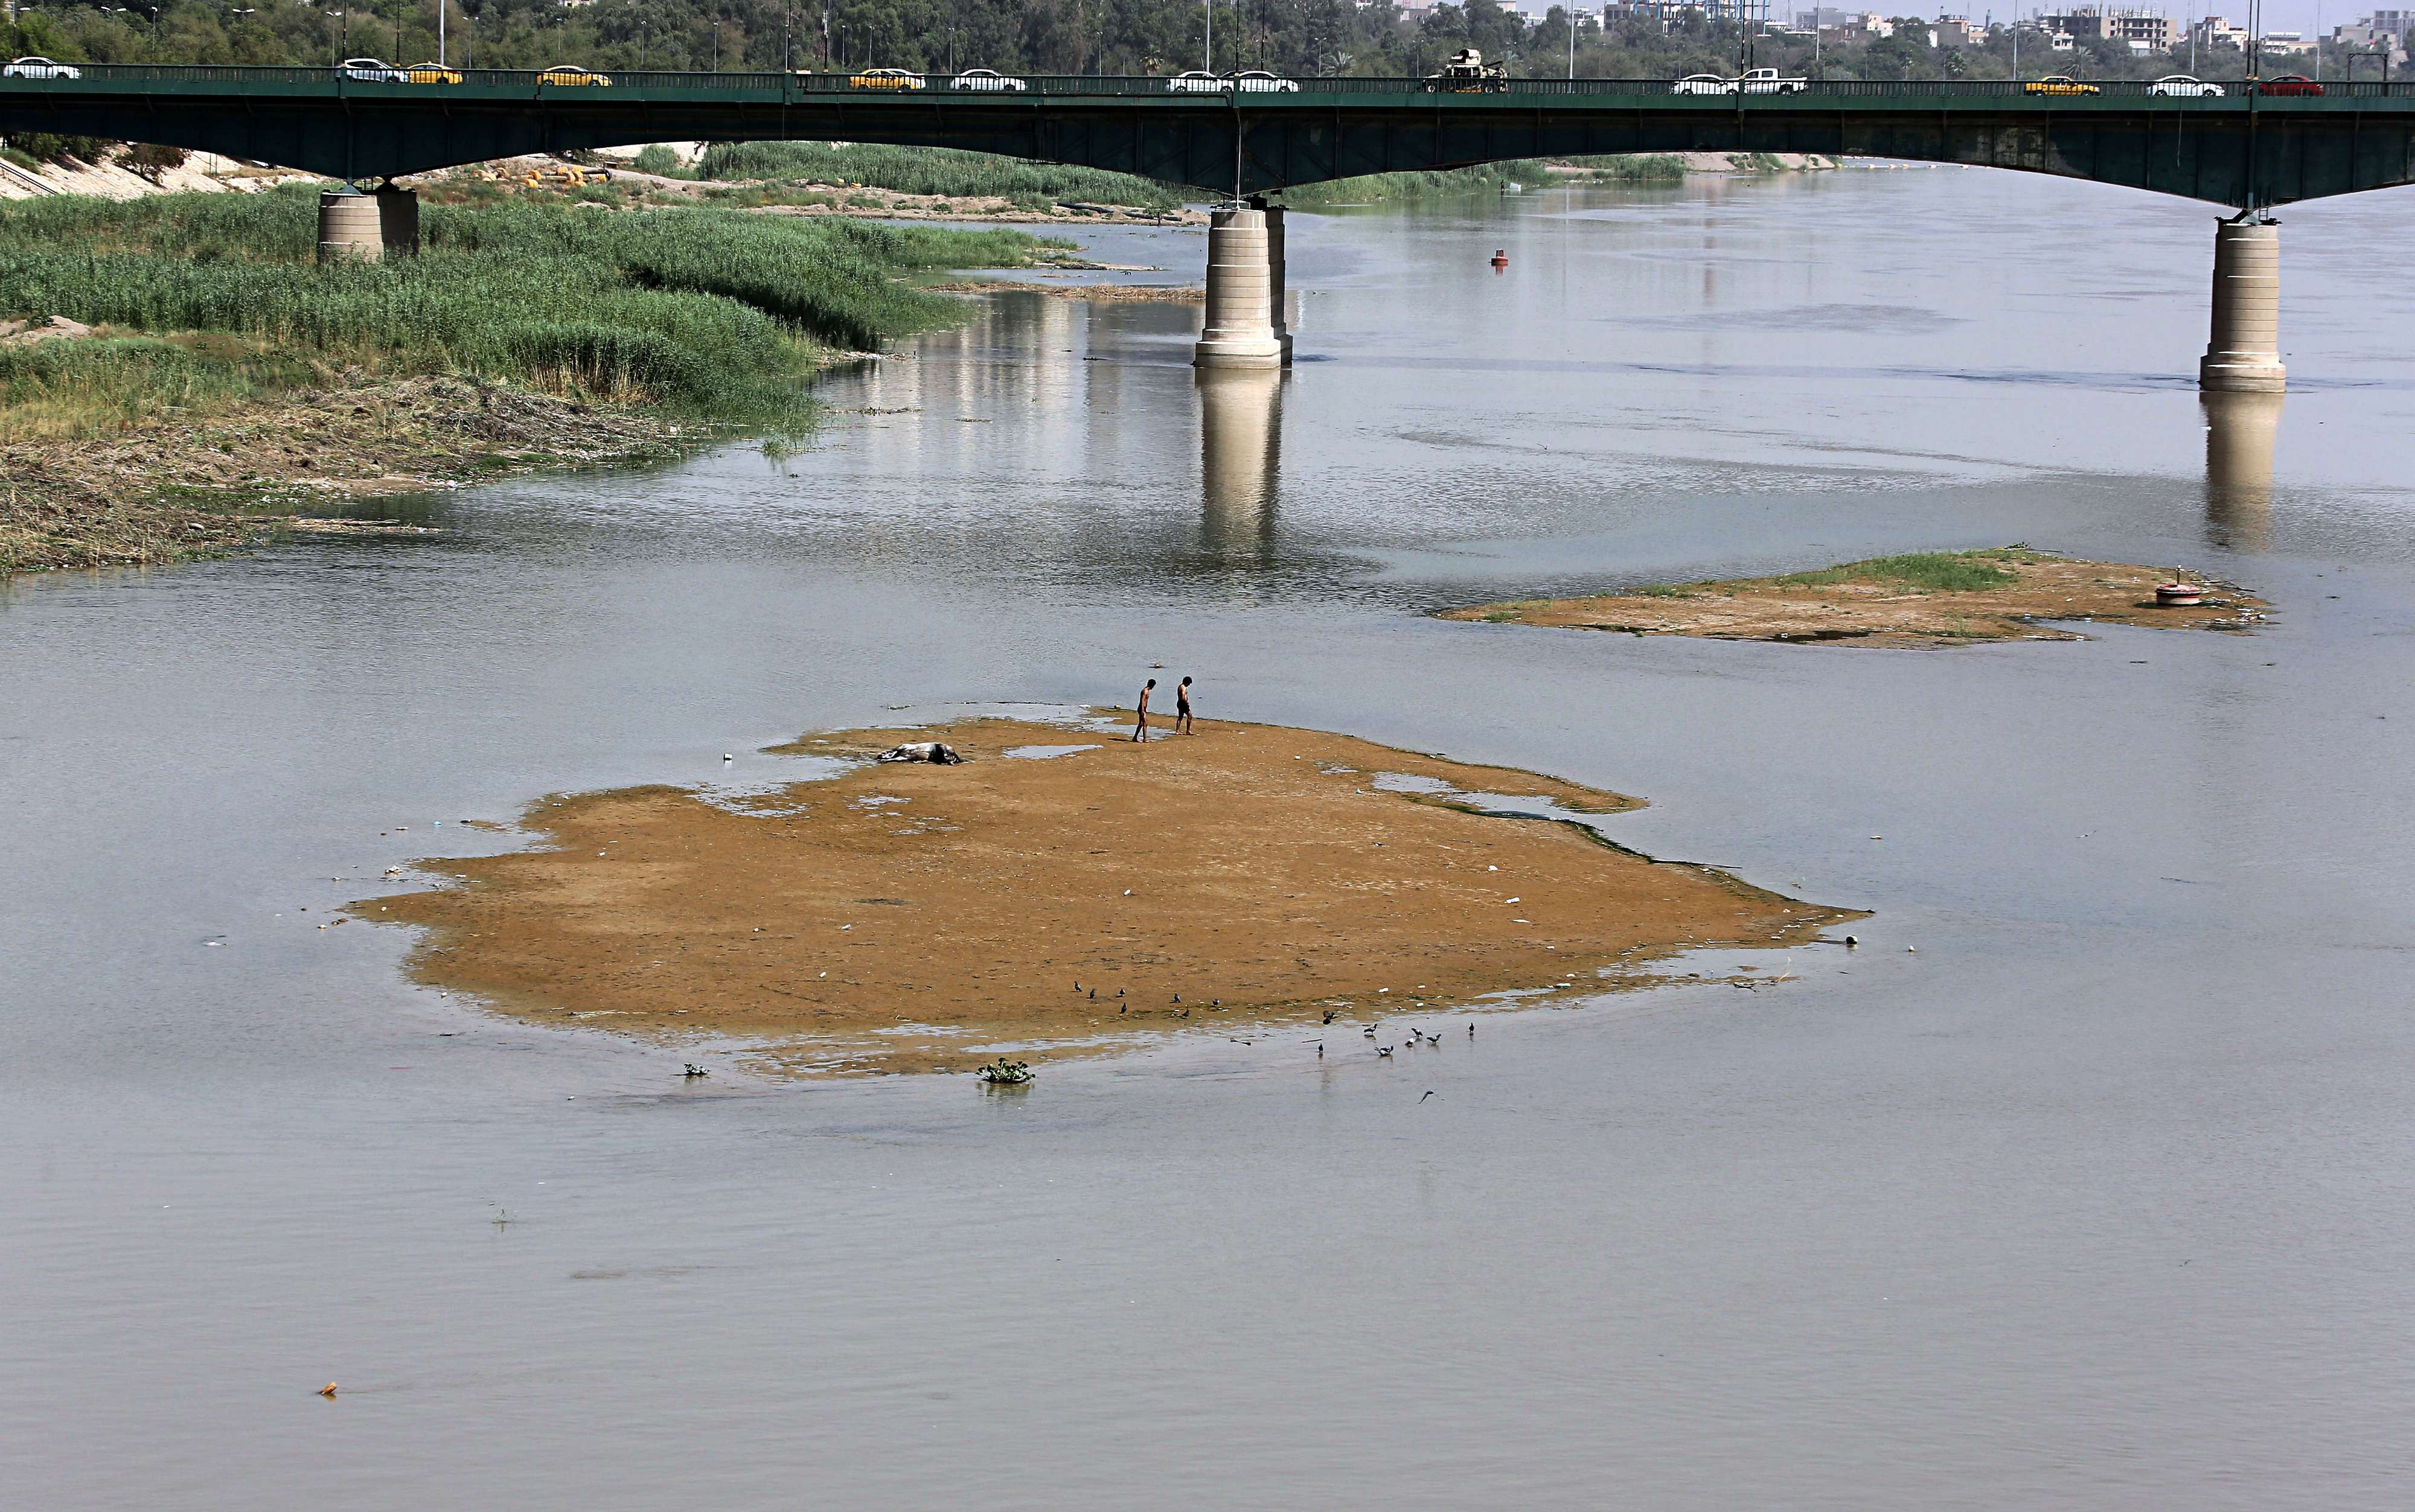 Lower water levels are seen on the Tigris River in Baghdad, on June 5. (AP)